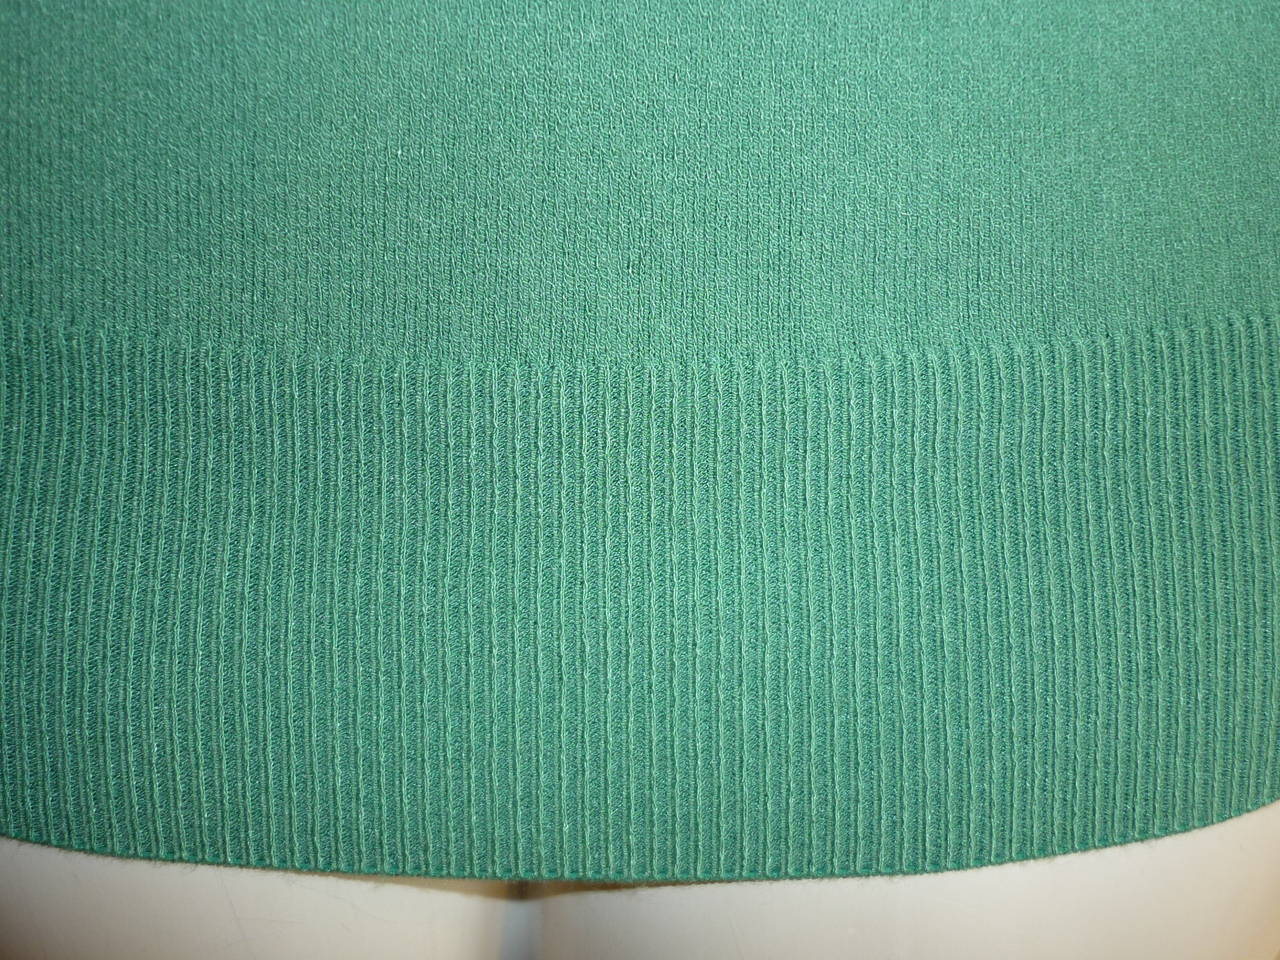 Dolce & Gabbana Soft Green Top NWT 40 ITL 6